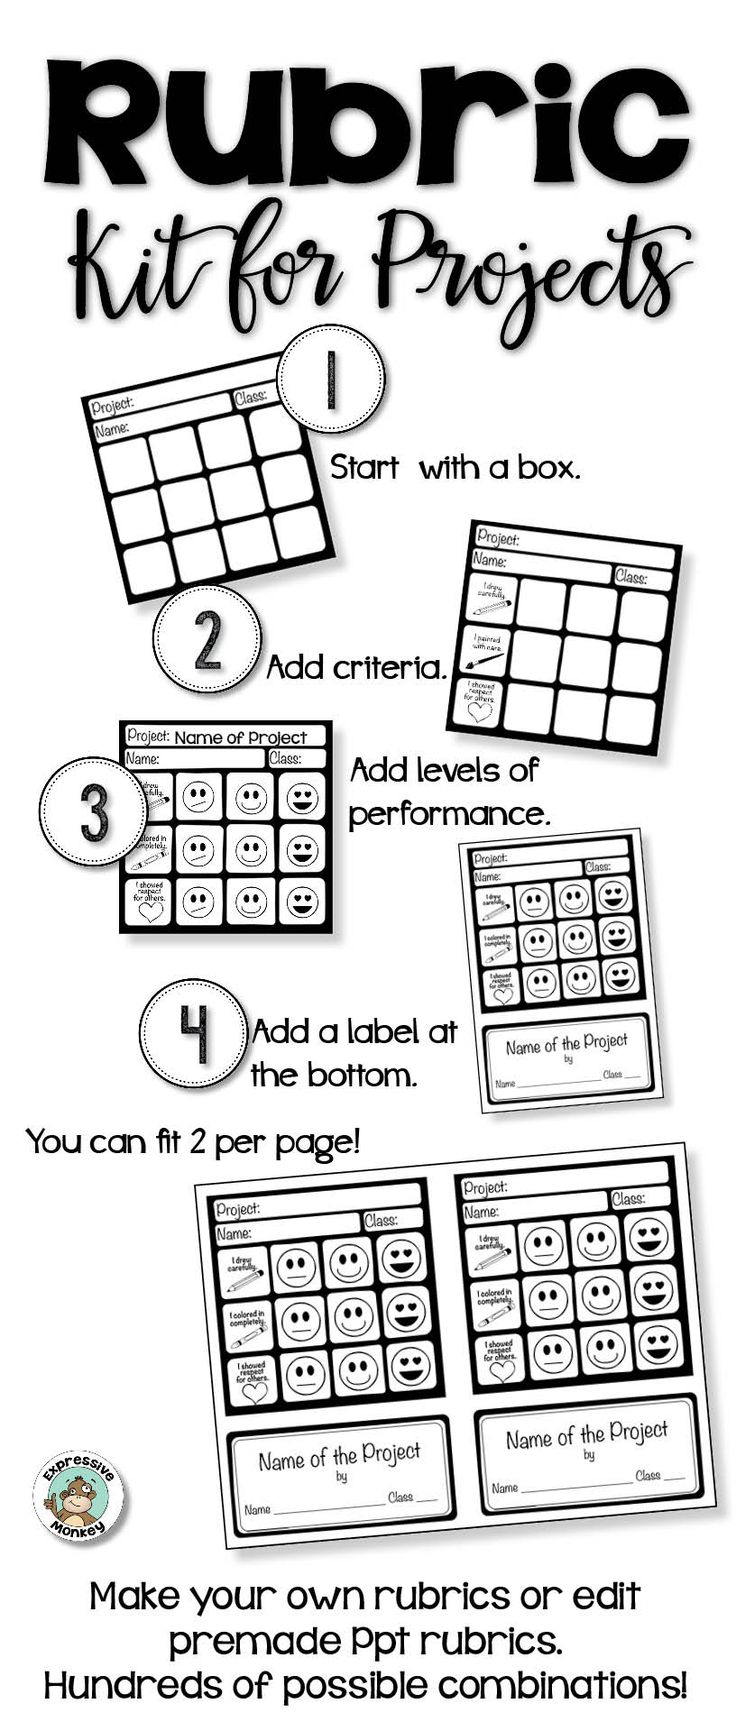 55 best Reflection and Assessment images on Pinterest